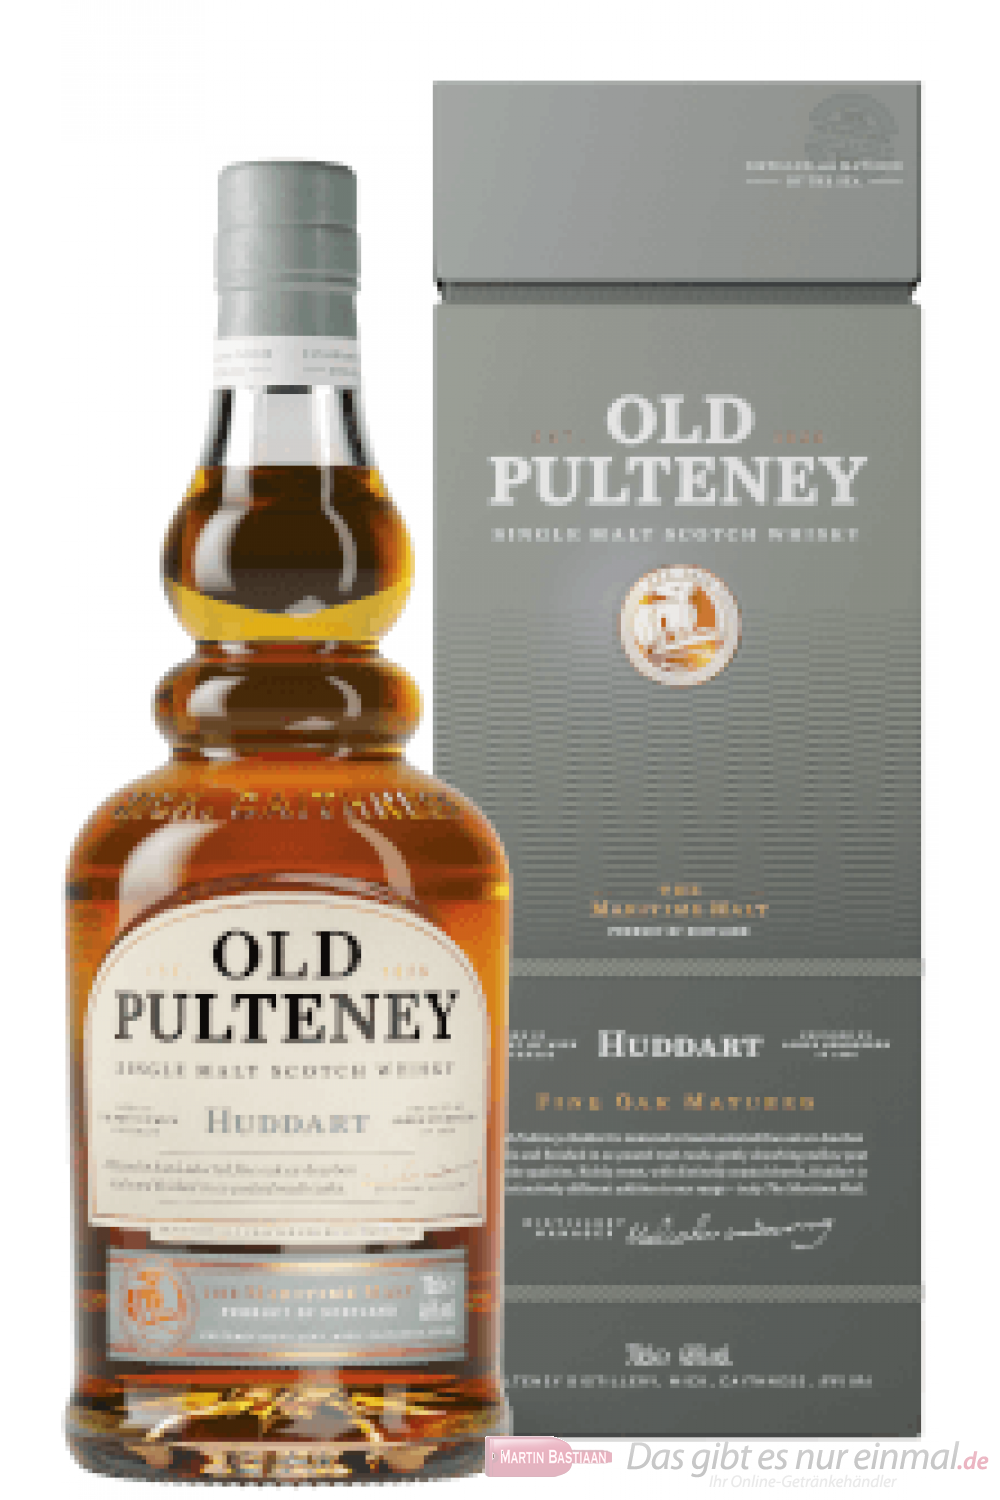 Old Pulteney Huddart Single Malt Scotch Whisky 0,7l